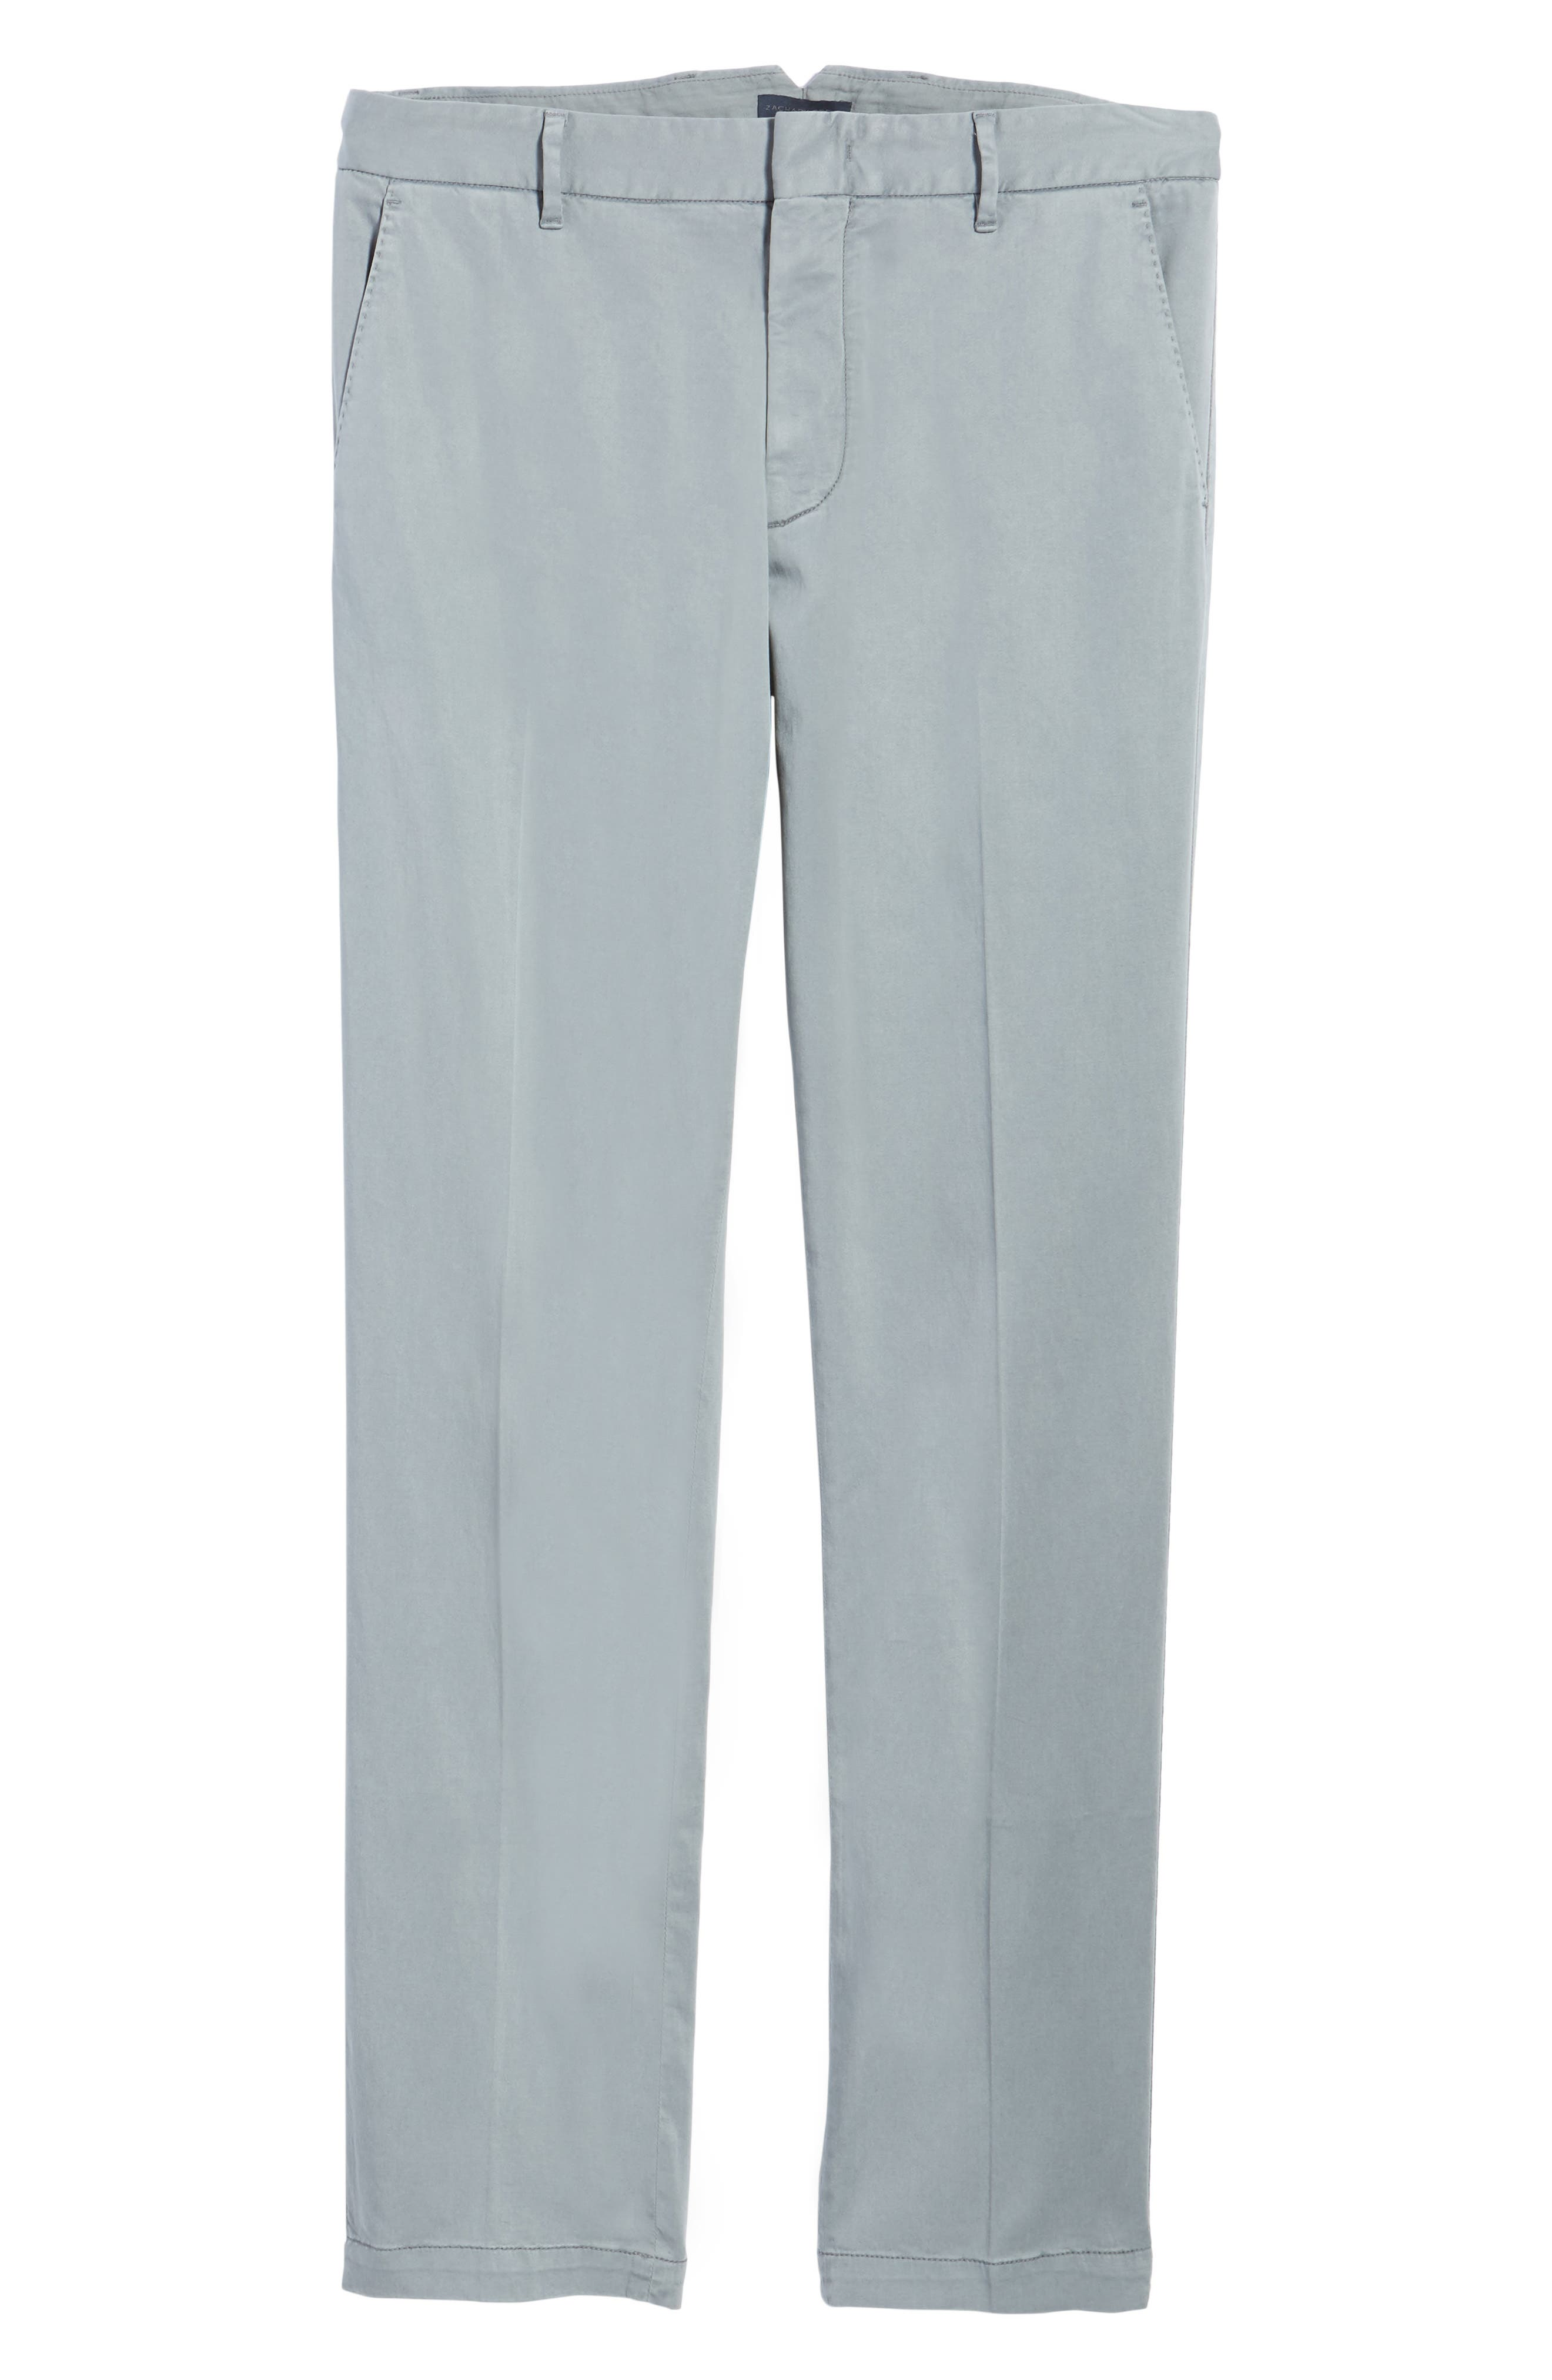 Aster Straight Fit Pants,                             Alternate thumbnail 6, color,                             020